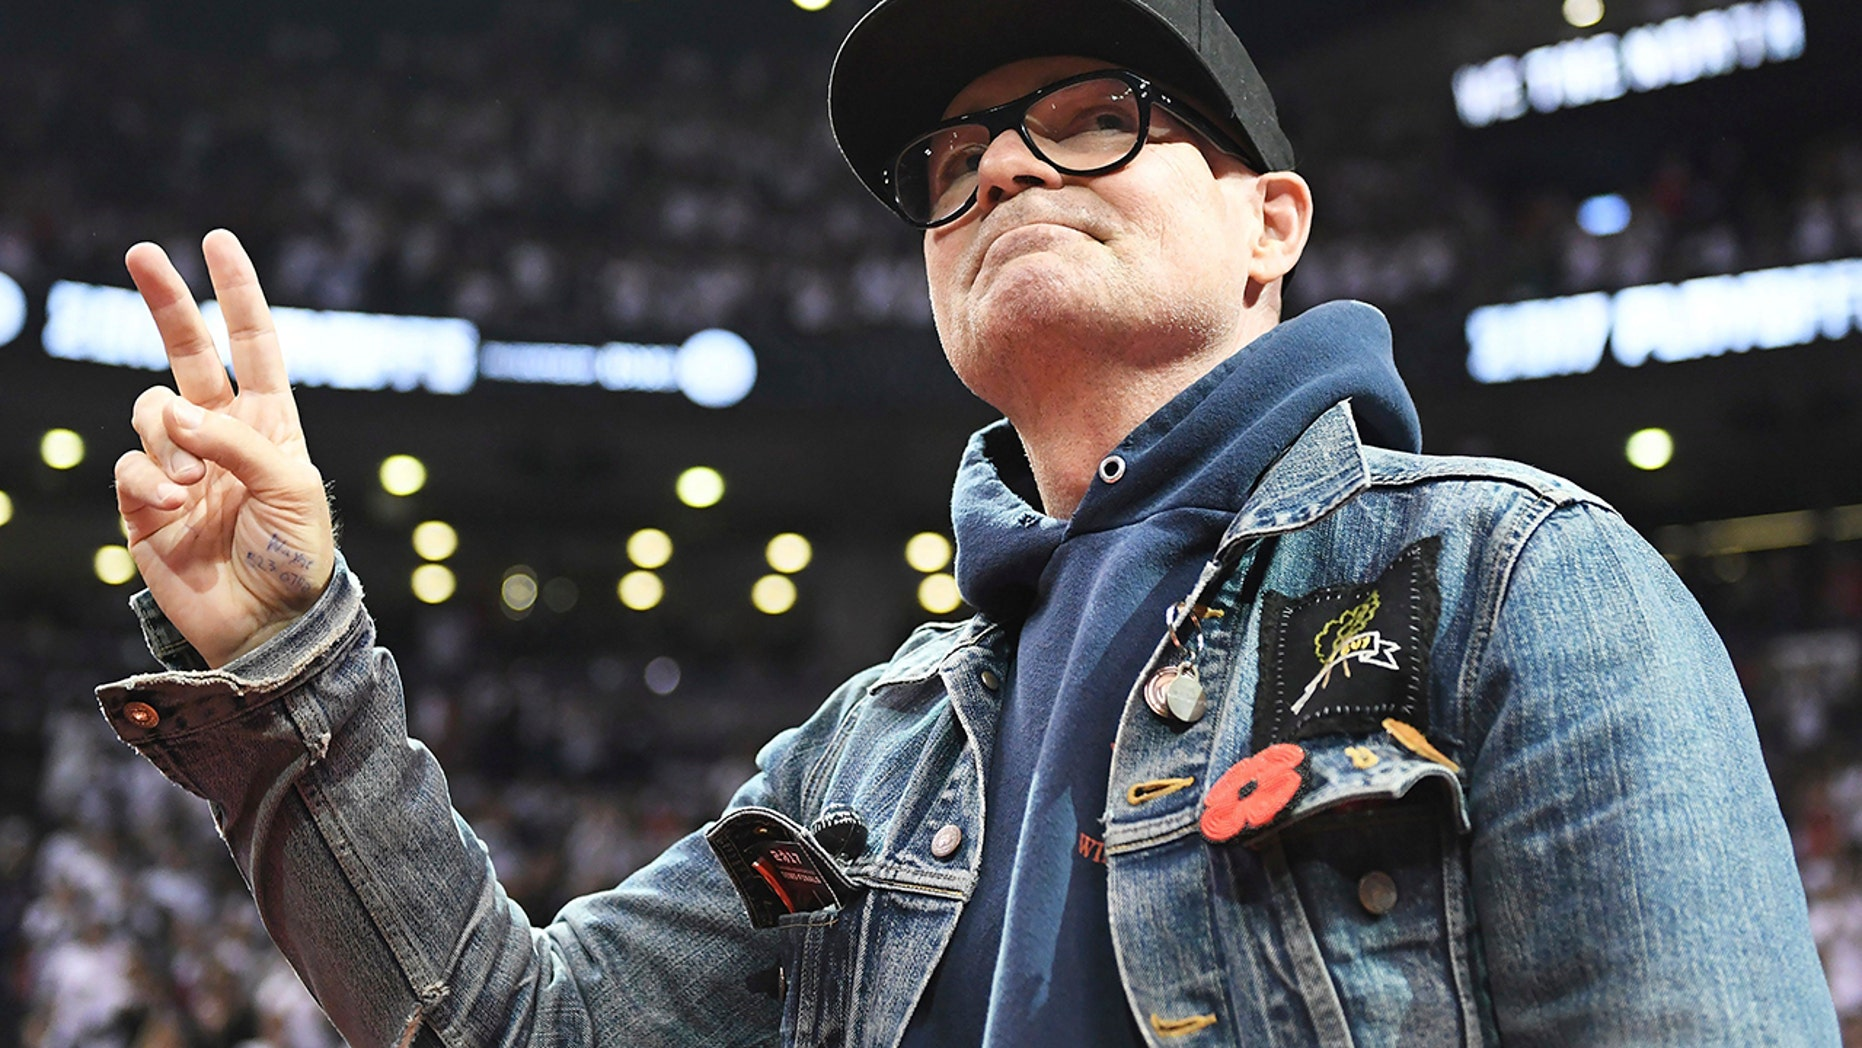 In this May 5, 2017 file photo, lead singer of The Tragically Hip Gord Downie salutes fans during the first half of Game 3 of an NBA basketball second-round playoff series between the Toronto Raptors and the Cleveland Cavaliers in Toronto. The widely revered lead singer died Tuesday night, Oct. 17, 2017.